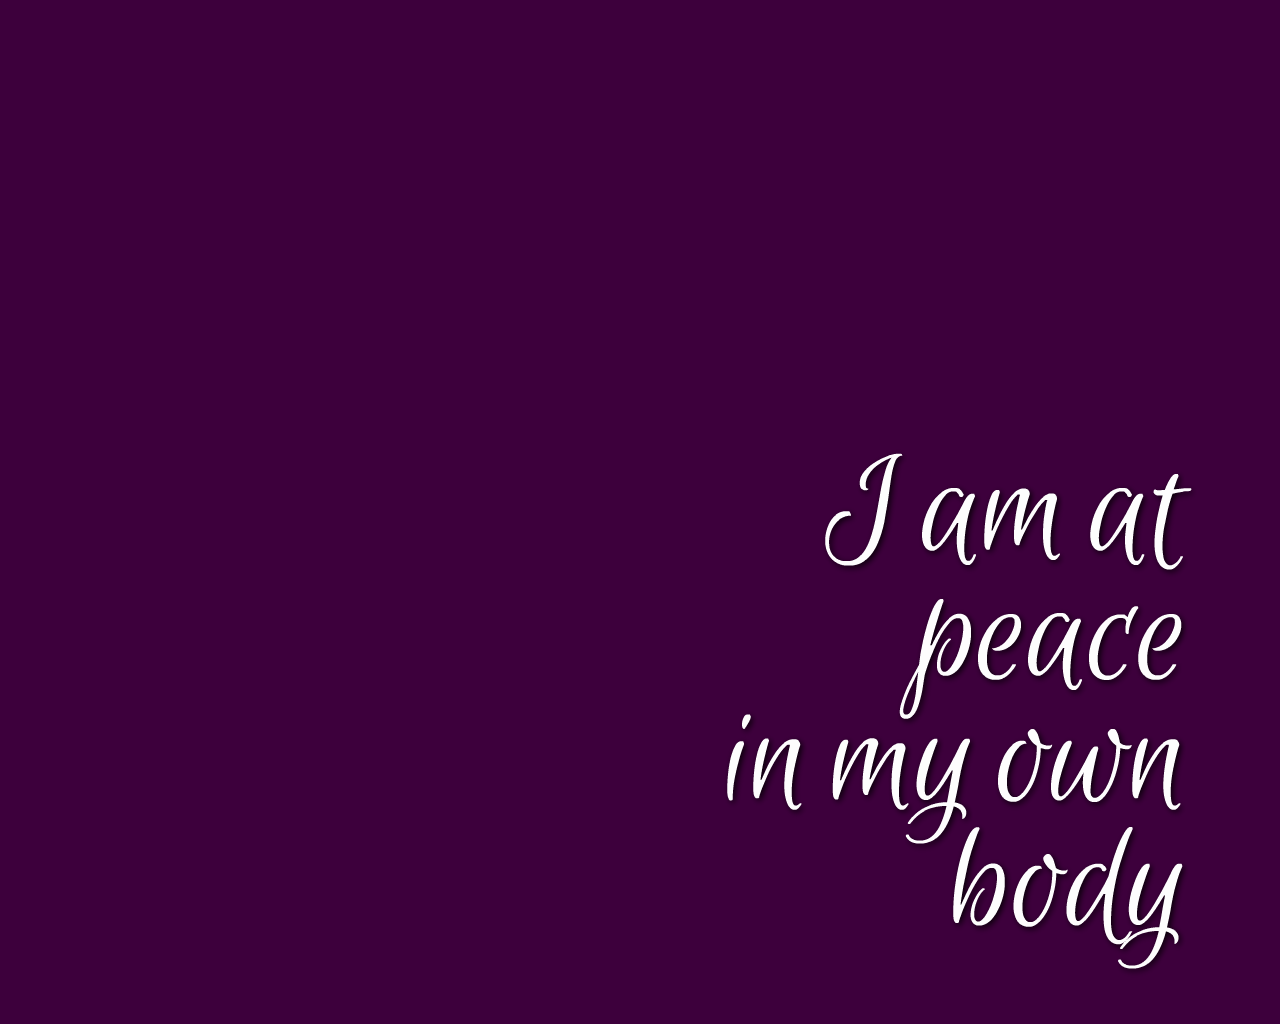 Get 16 Beautiful Affirmation Wallpapers For Women Everyday